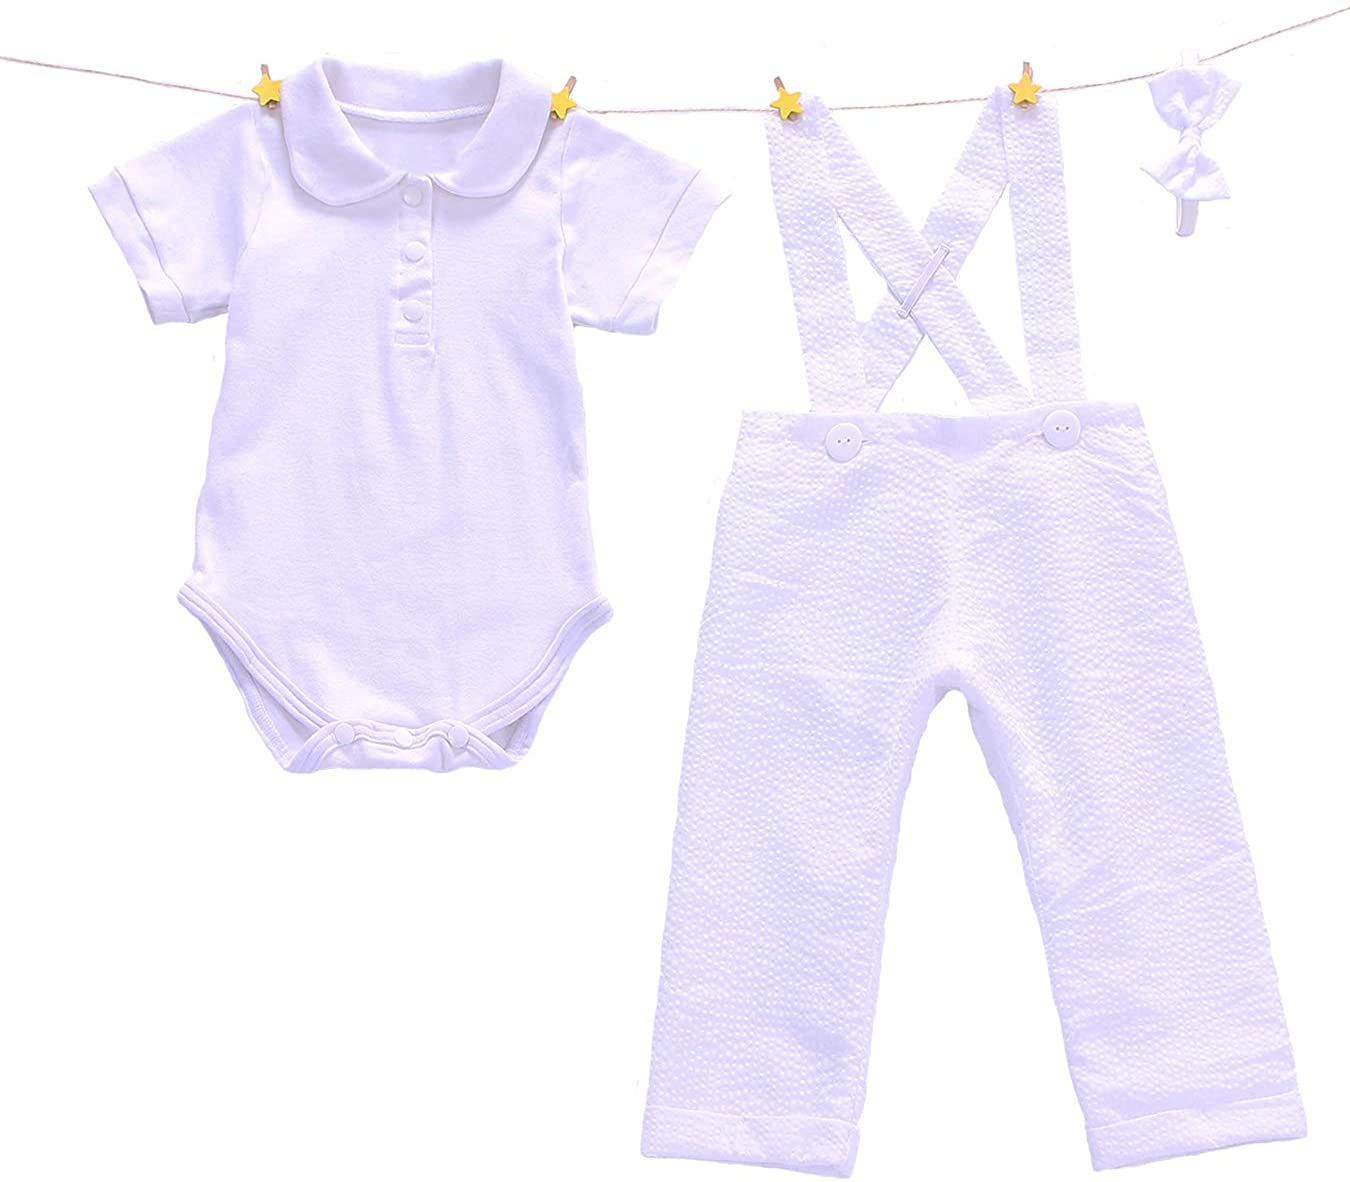 Euro Bear White Baby Boys Baptism Christening Outfit Suit